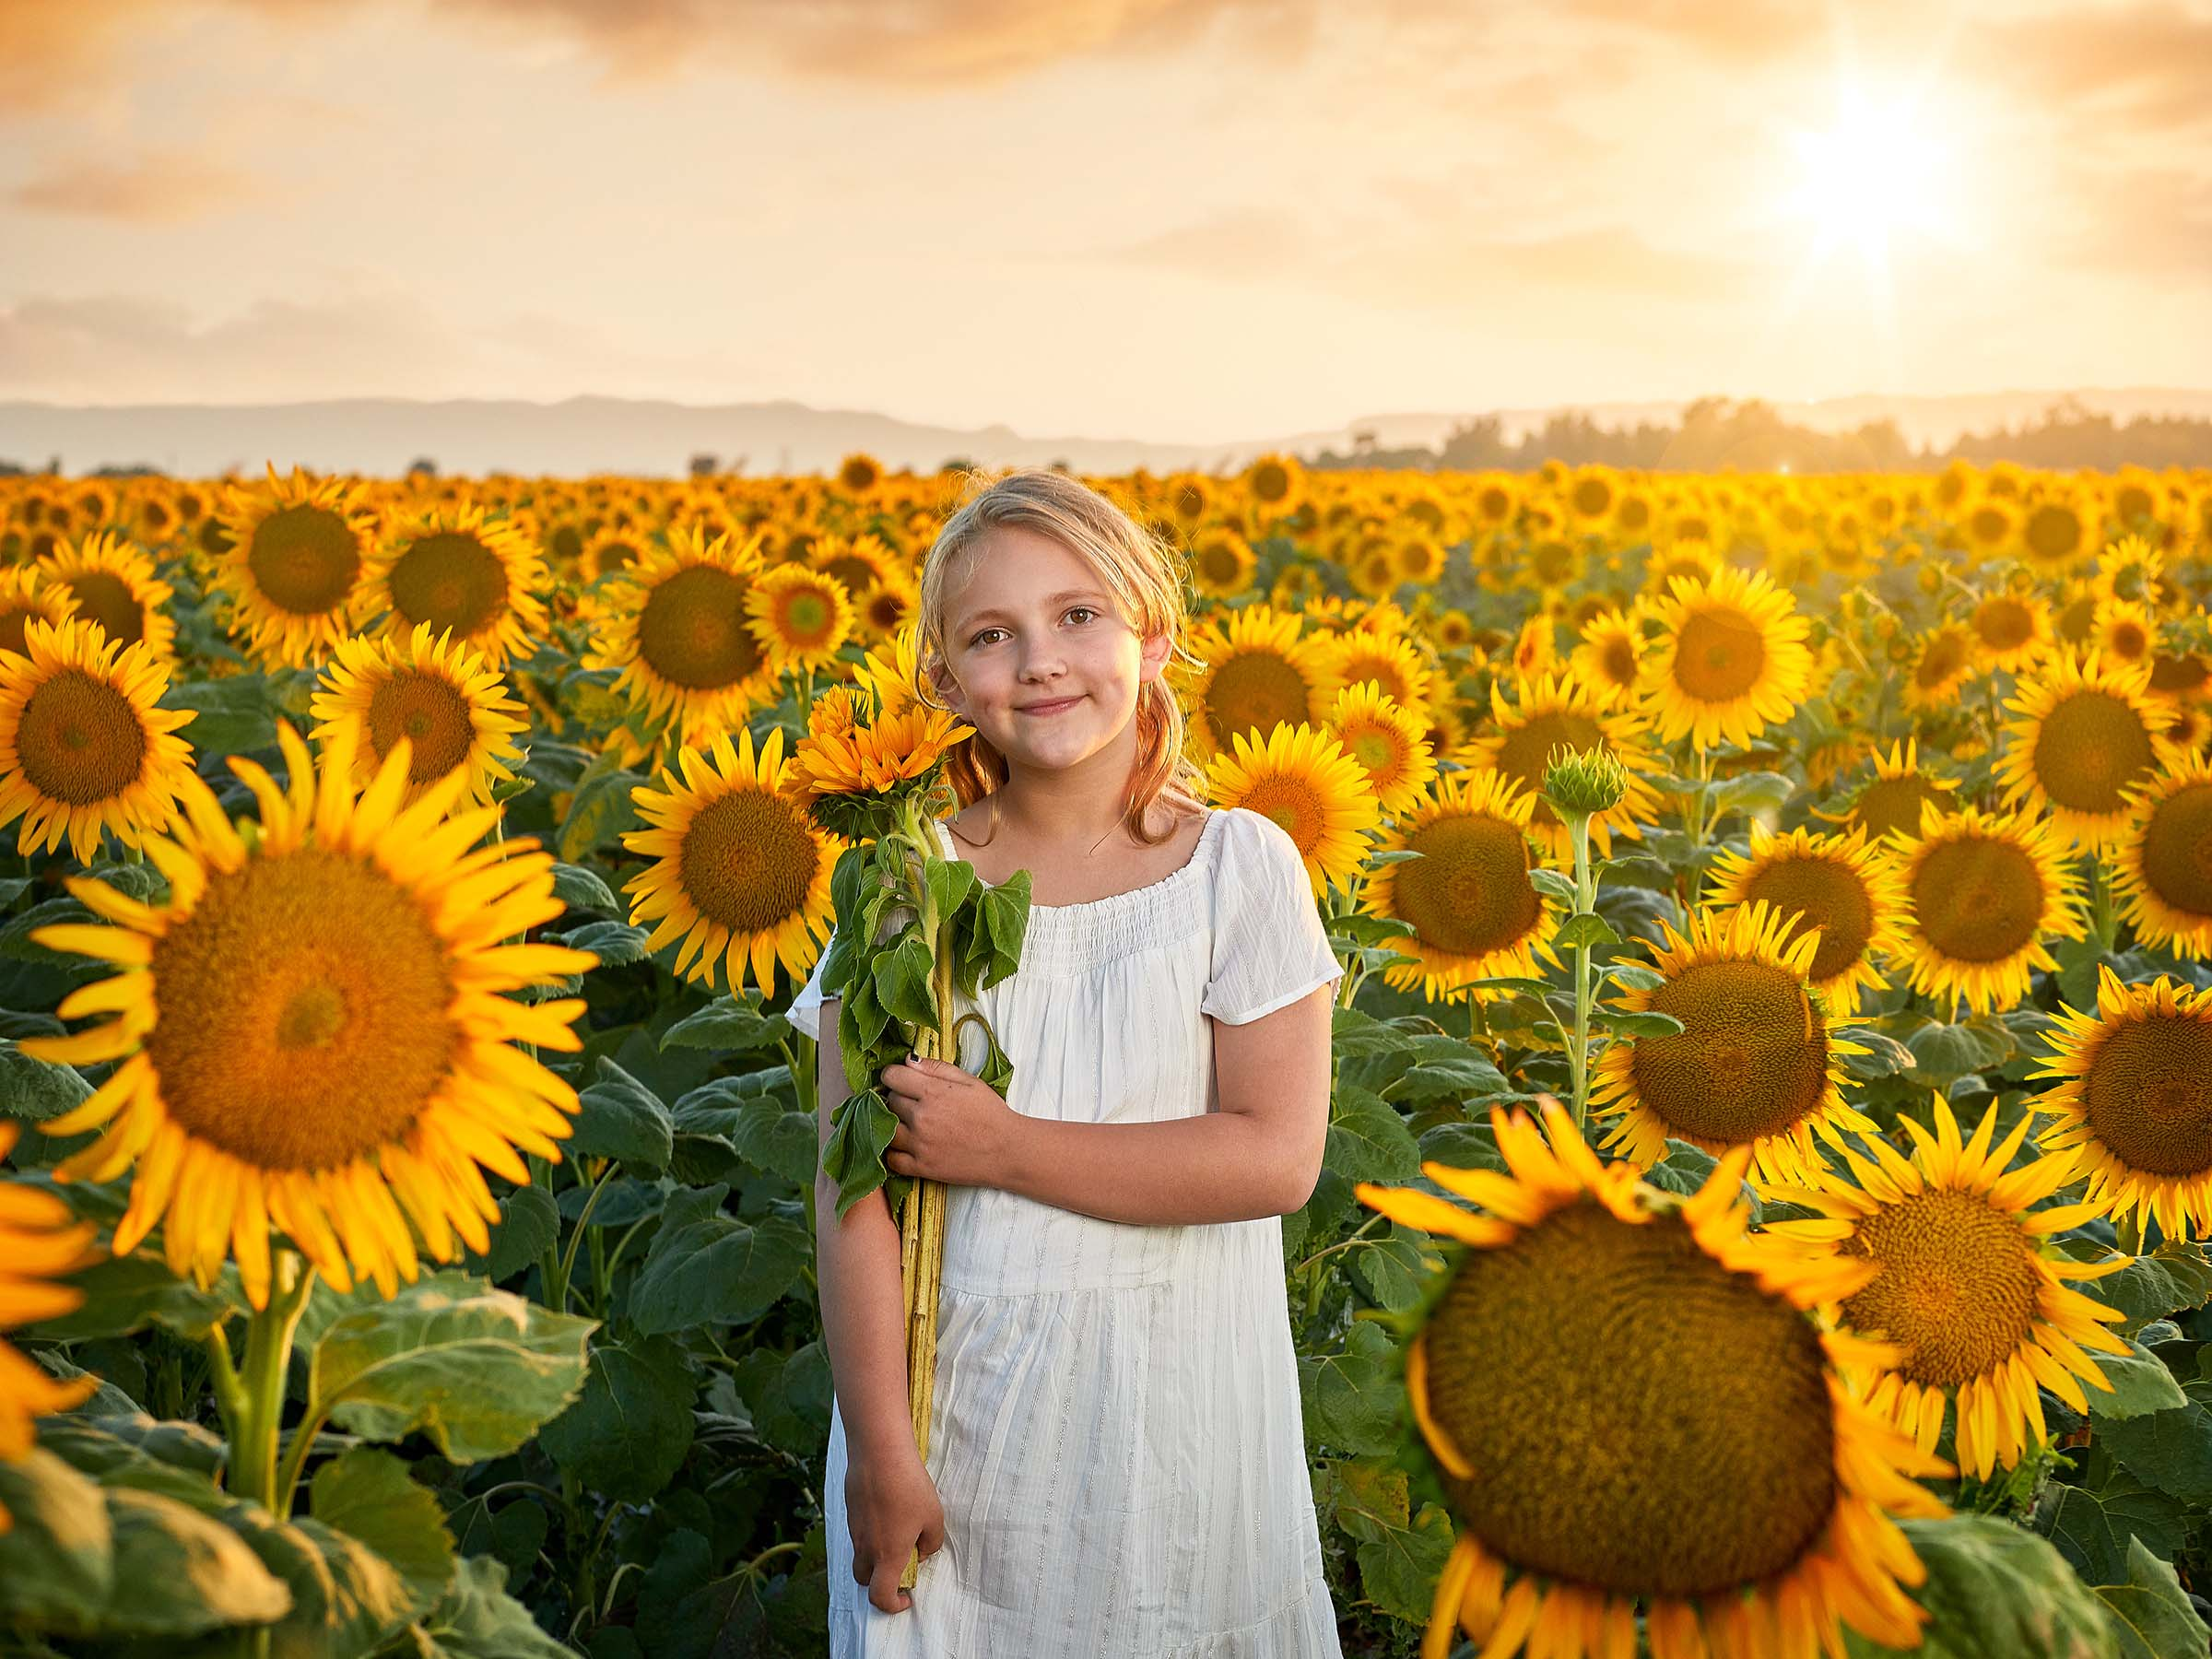 tjp_200702_sunflower_girls_0550_final_web